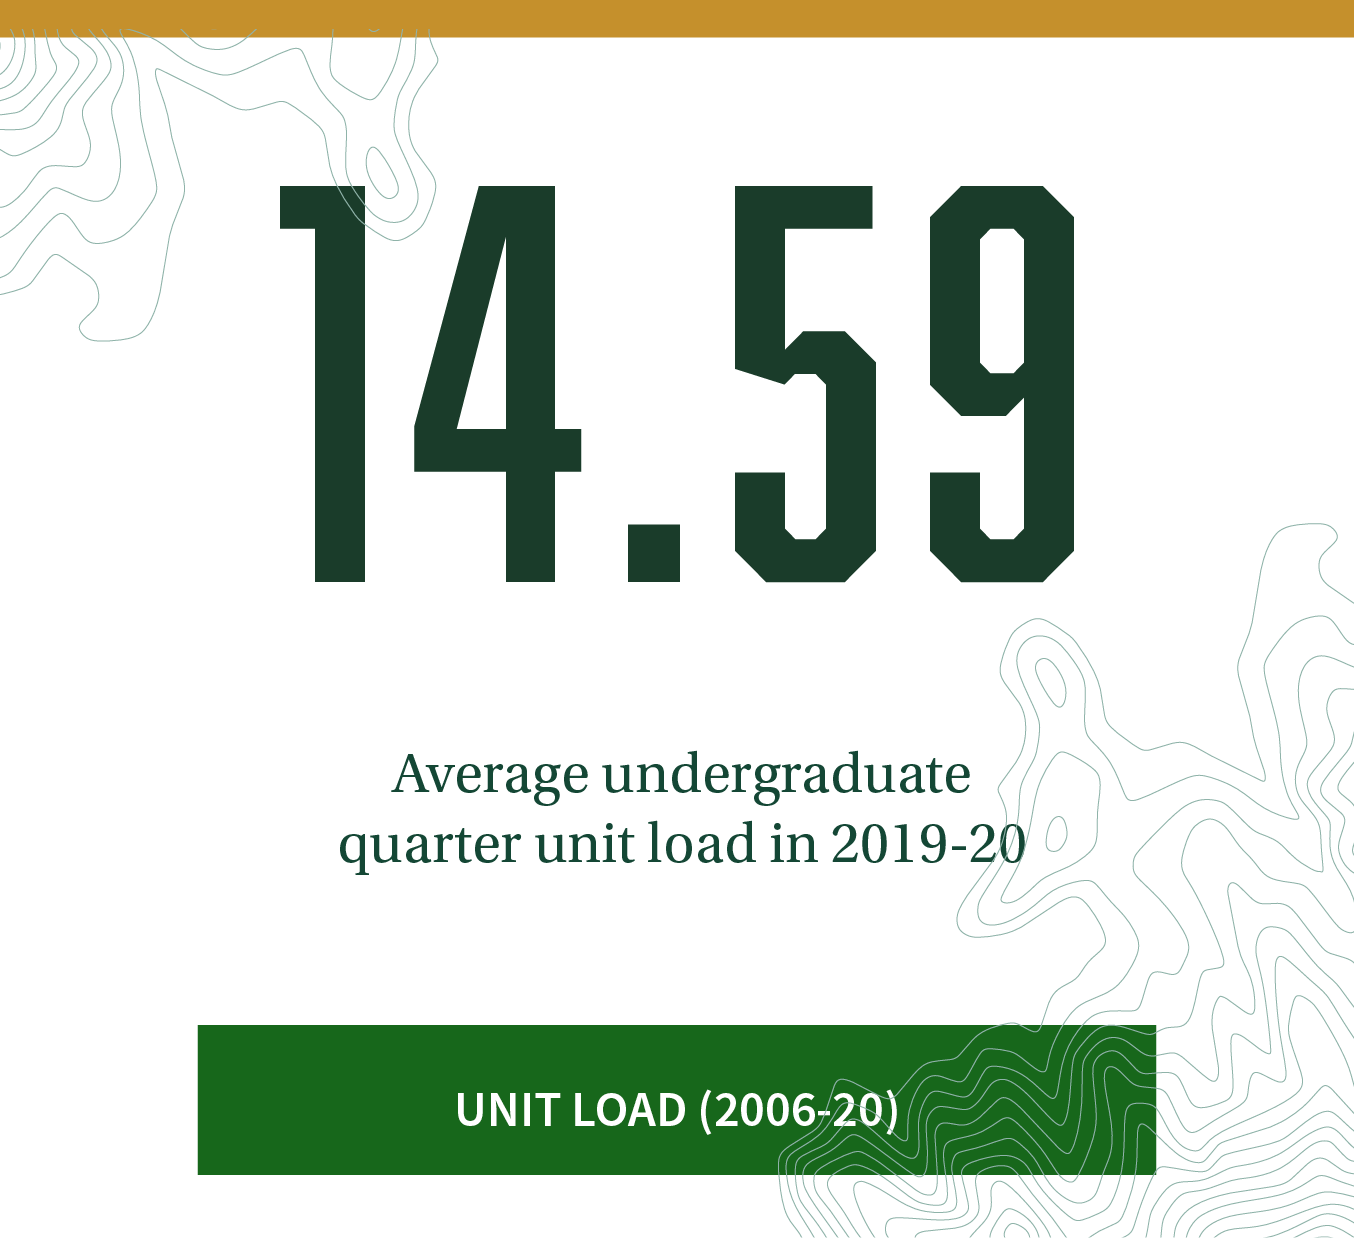 14.59. Average undergraduate unit load per quarter in 2019-20. Click to learn about unit load trends between 2006-20.